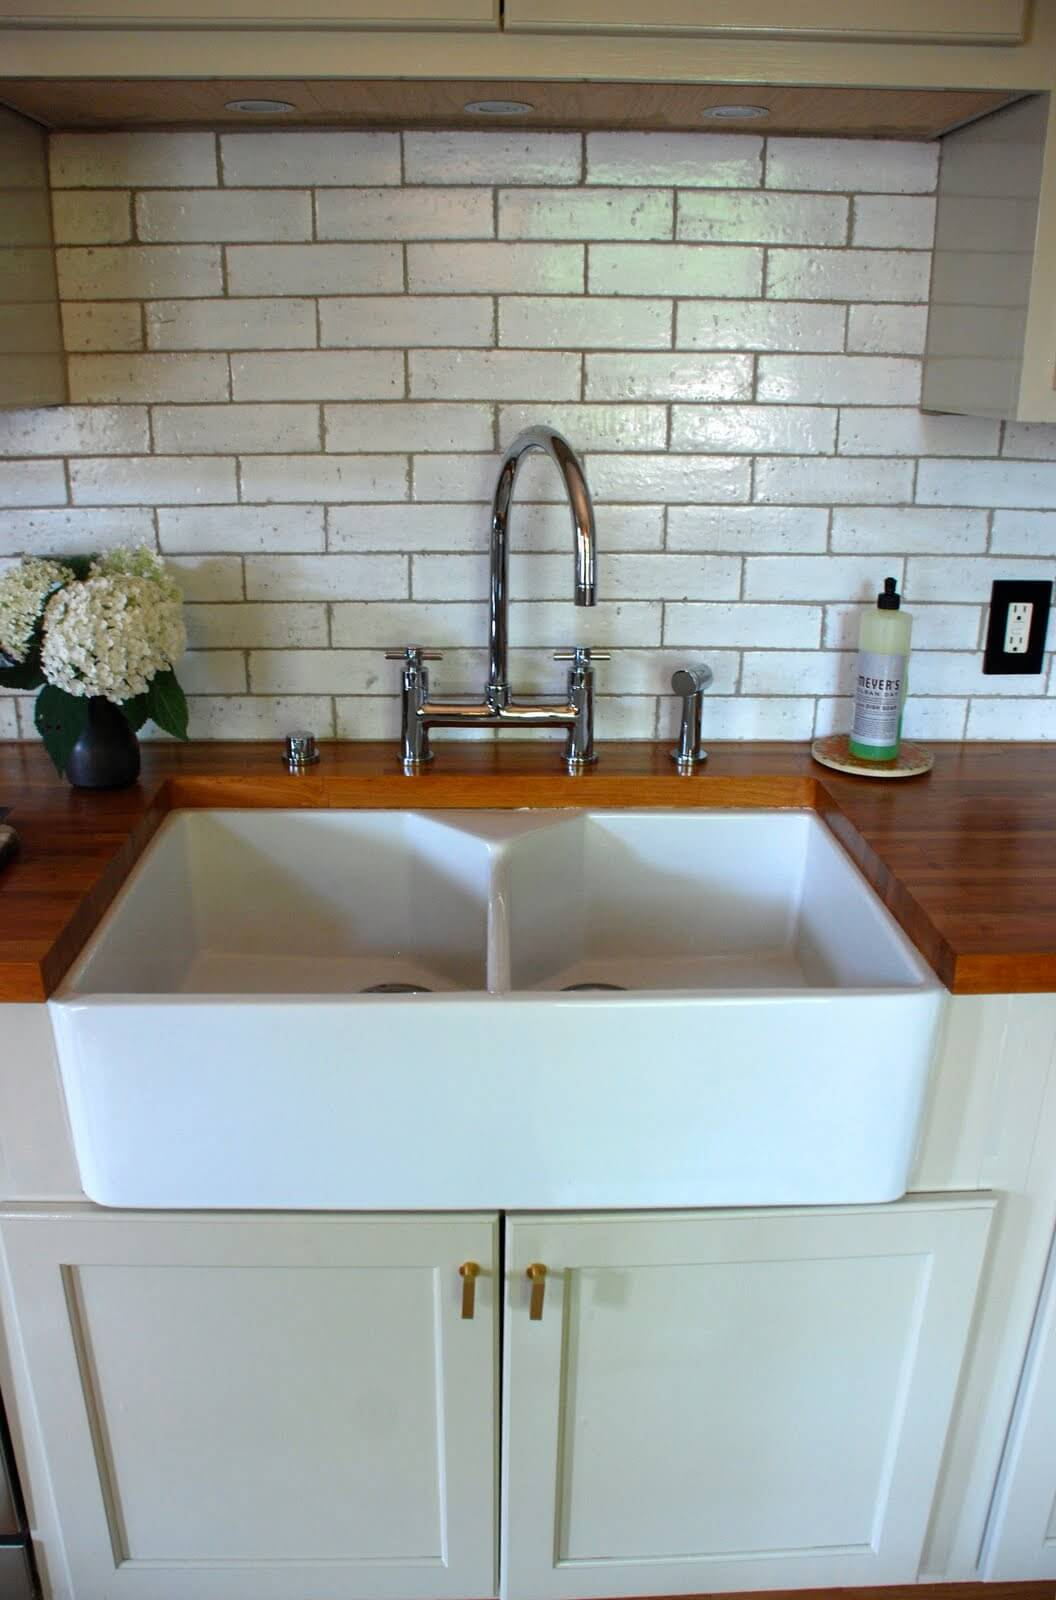 26 Farmhouse Kitchen Sink Ideas and Designs for 2020 on Kitchen Sink Ideas  id=87740